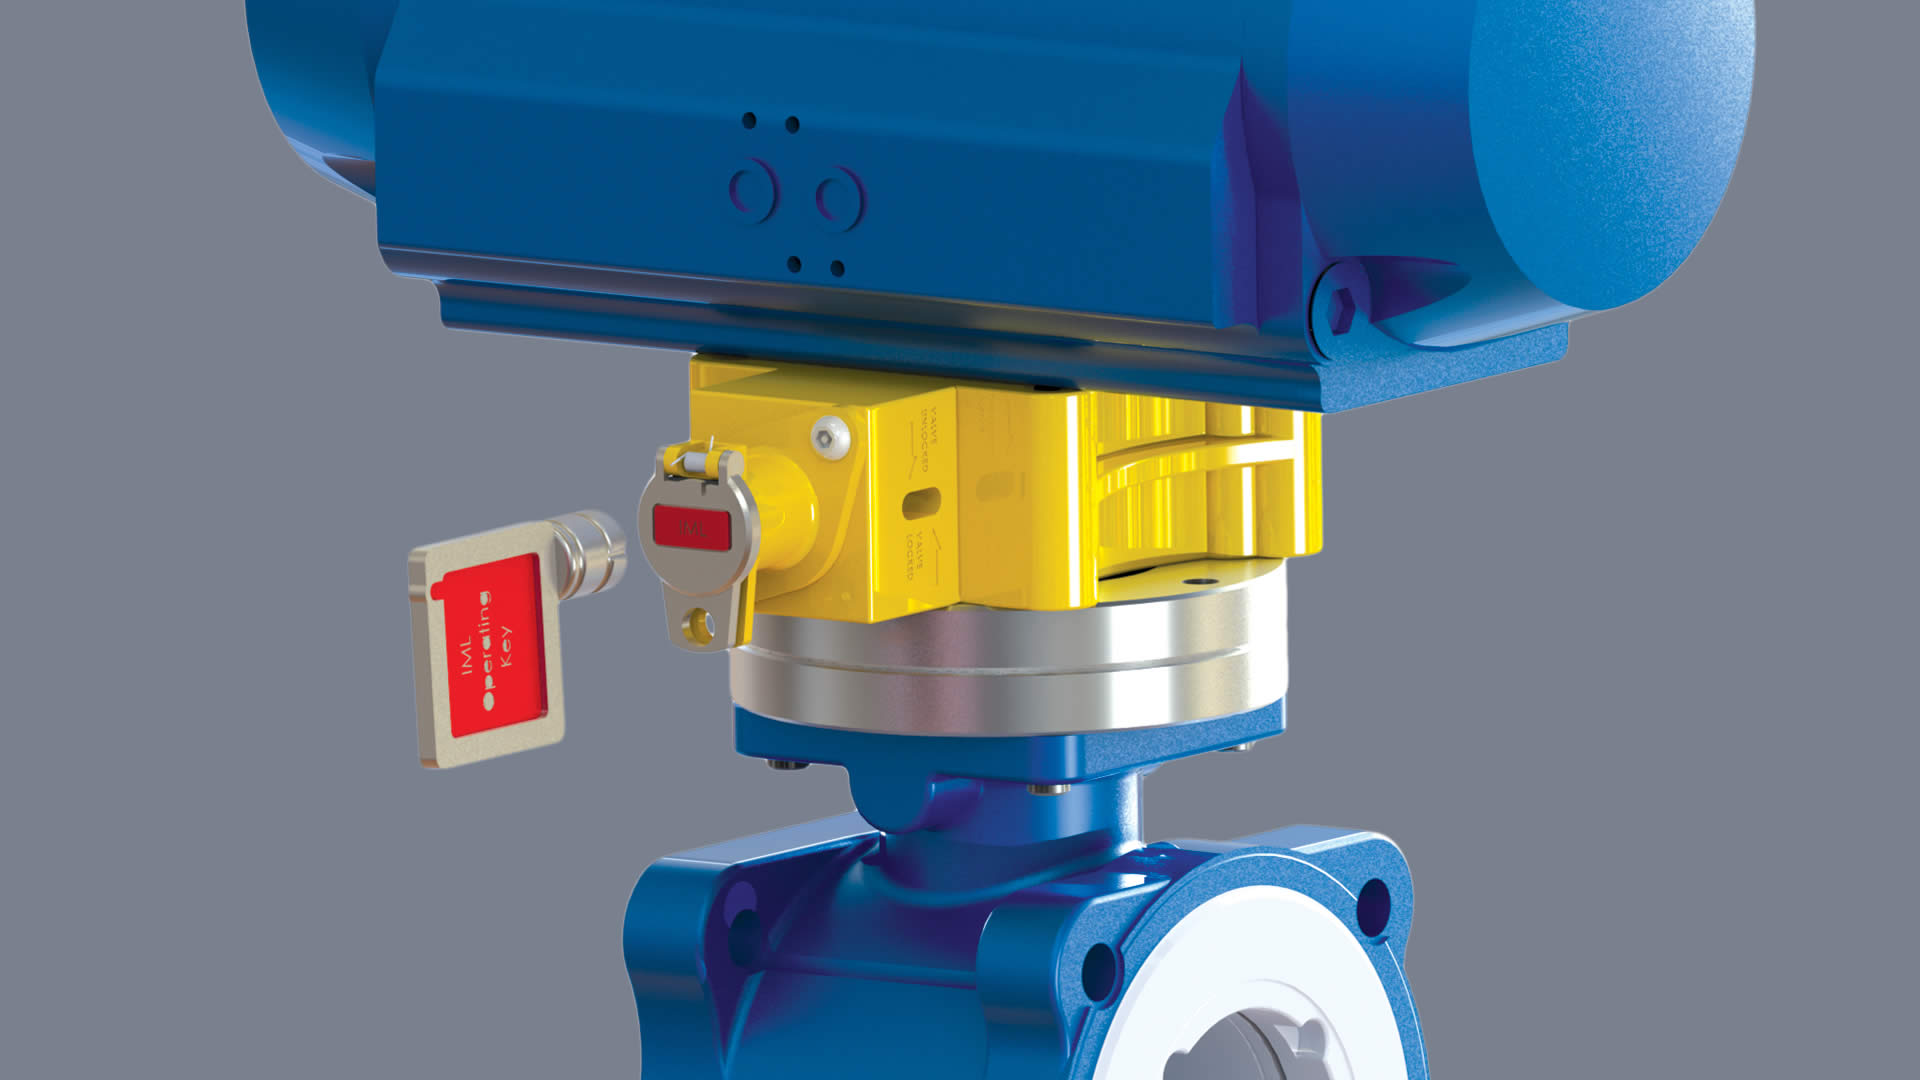 Actuator lock for safe valve maintenance